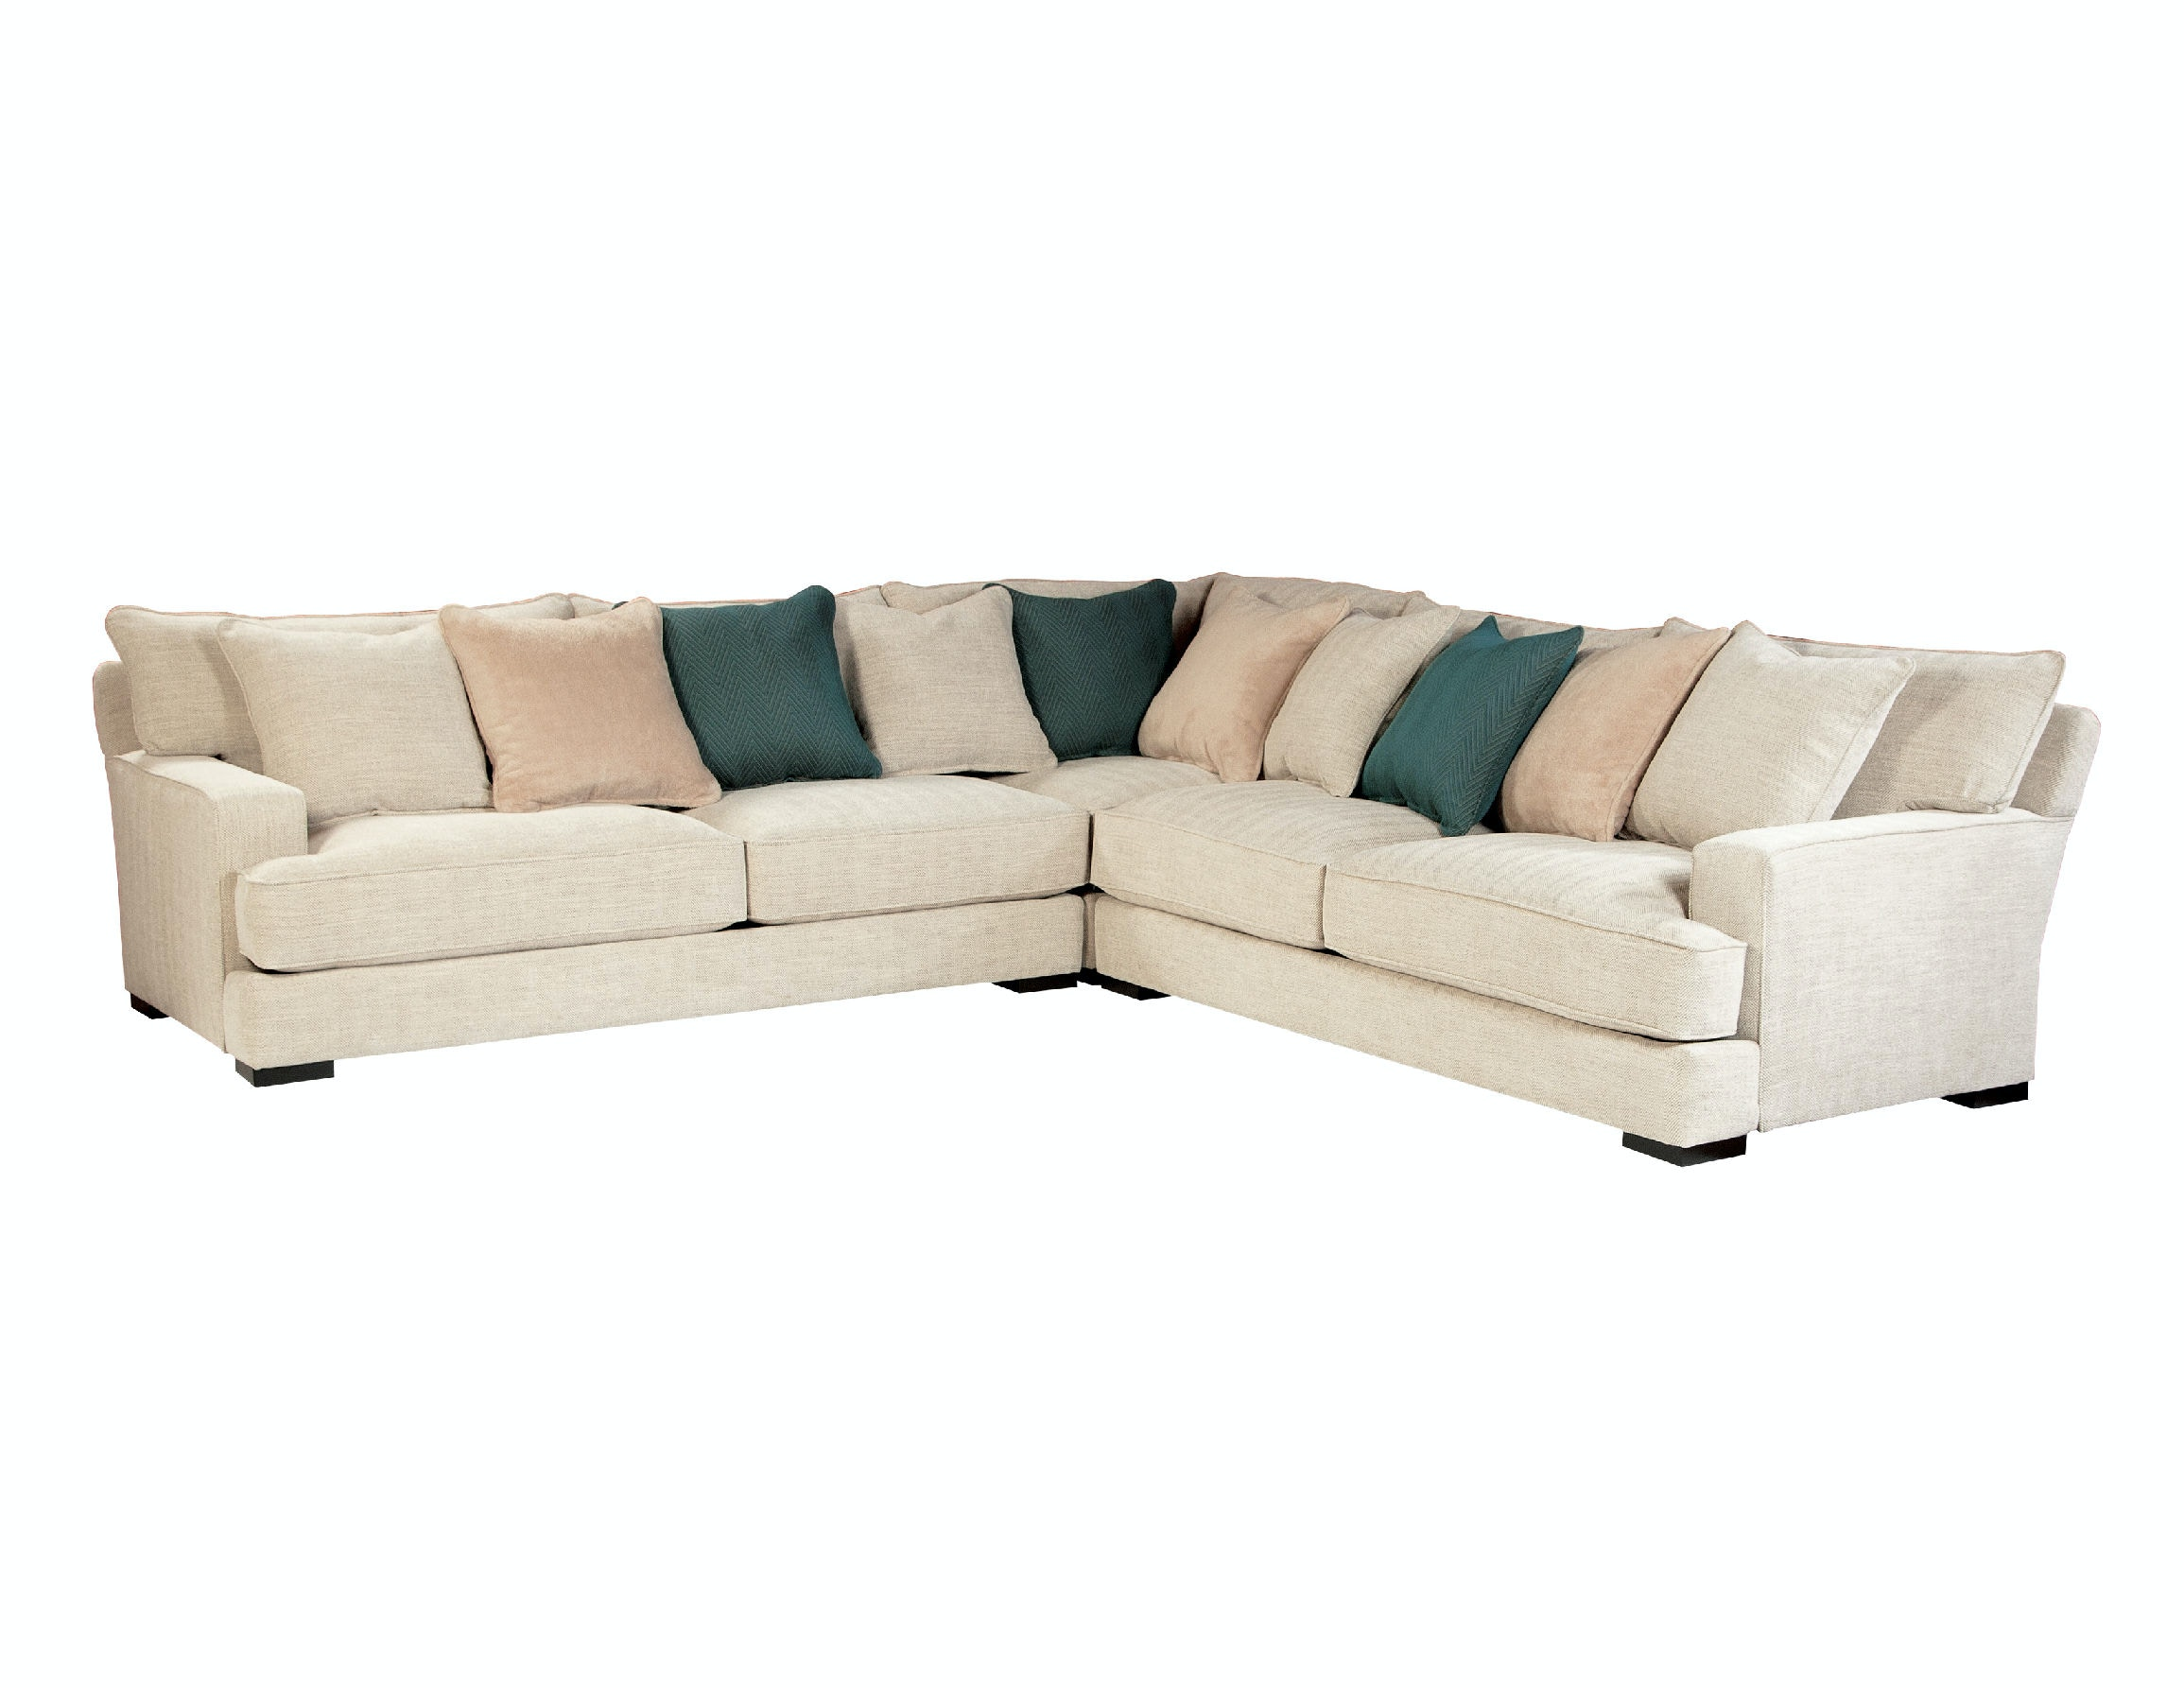 Jonathan Louis International Living Room Matthew Sectional 246 Sectional At Klopfenstein  Home Rooms